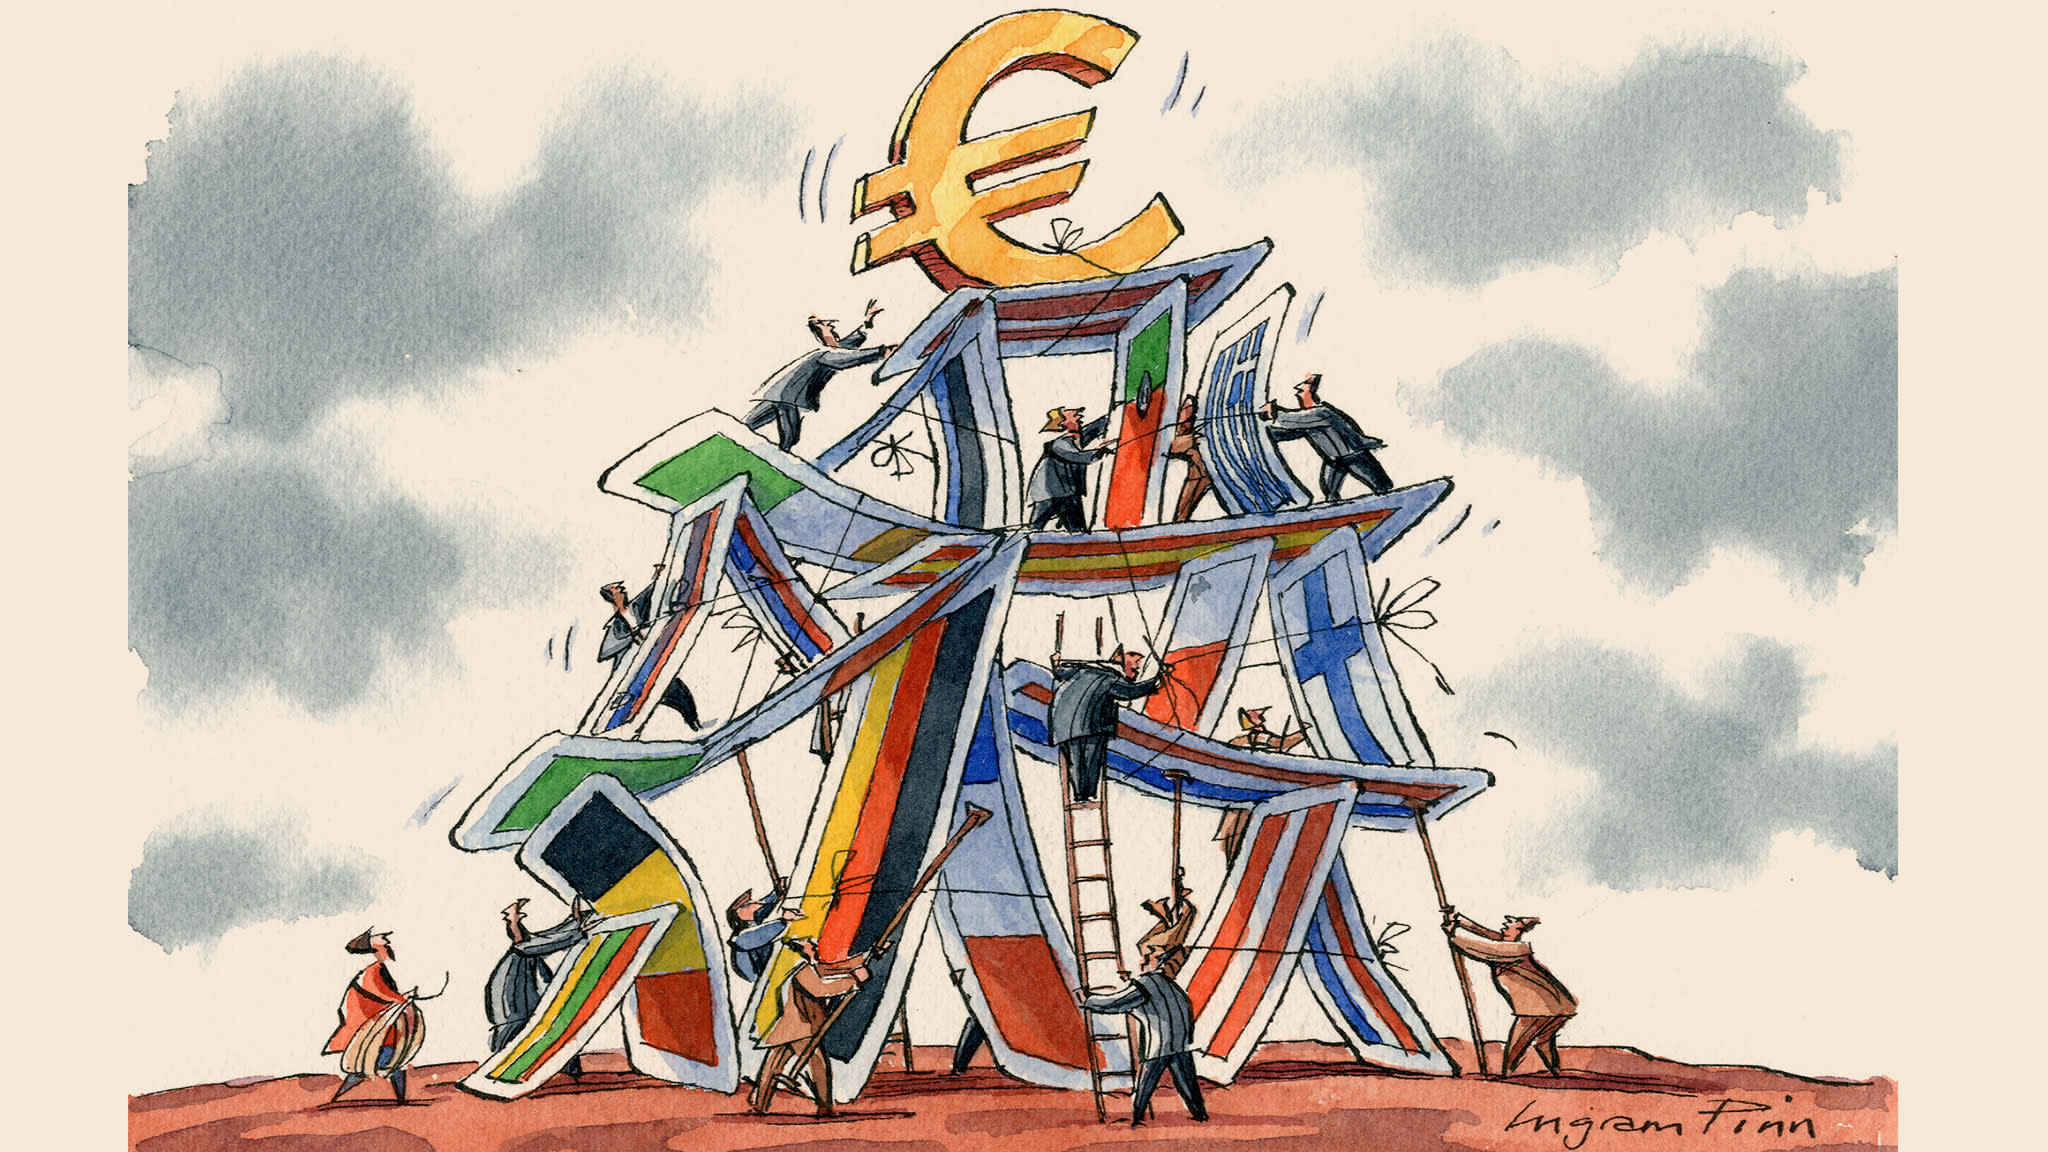 A Greek deal cannot fix the flaws in the euro | Financial Times